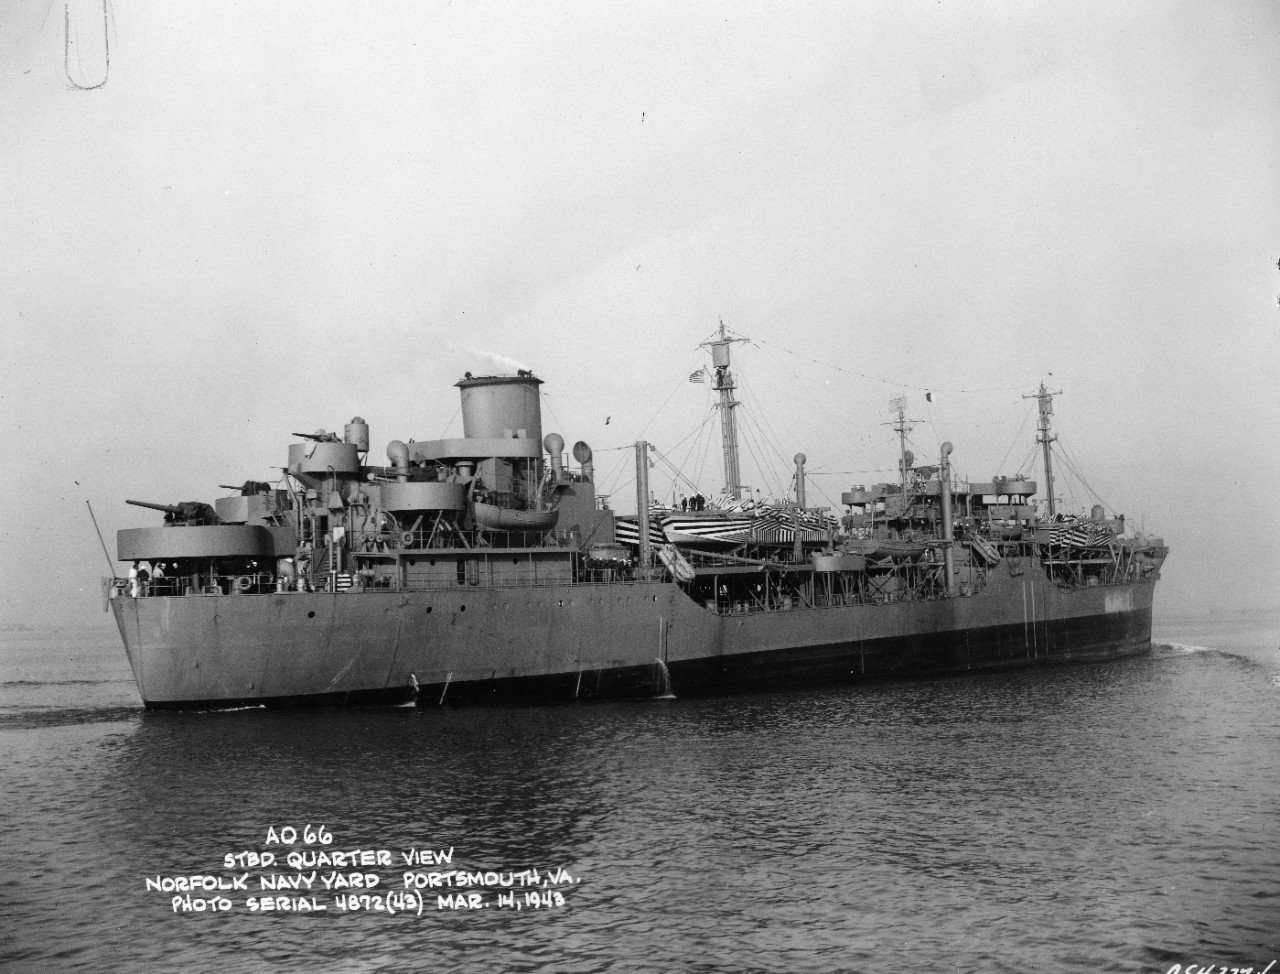 Starboard bow view of USS Atascosa (AO-66) underway in light load condition with camouflaged PT boats as deck cargo fore and aft off the Norfolk Navy Yard, Portsmouth, VA, on 14 March 1943. She was the former S.S. Esso Columbia. Note the lines at her bow. She seems to be streaming paravanes.